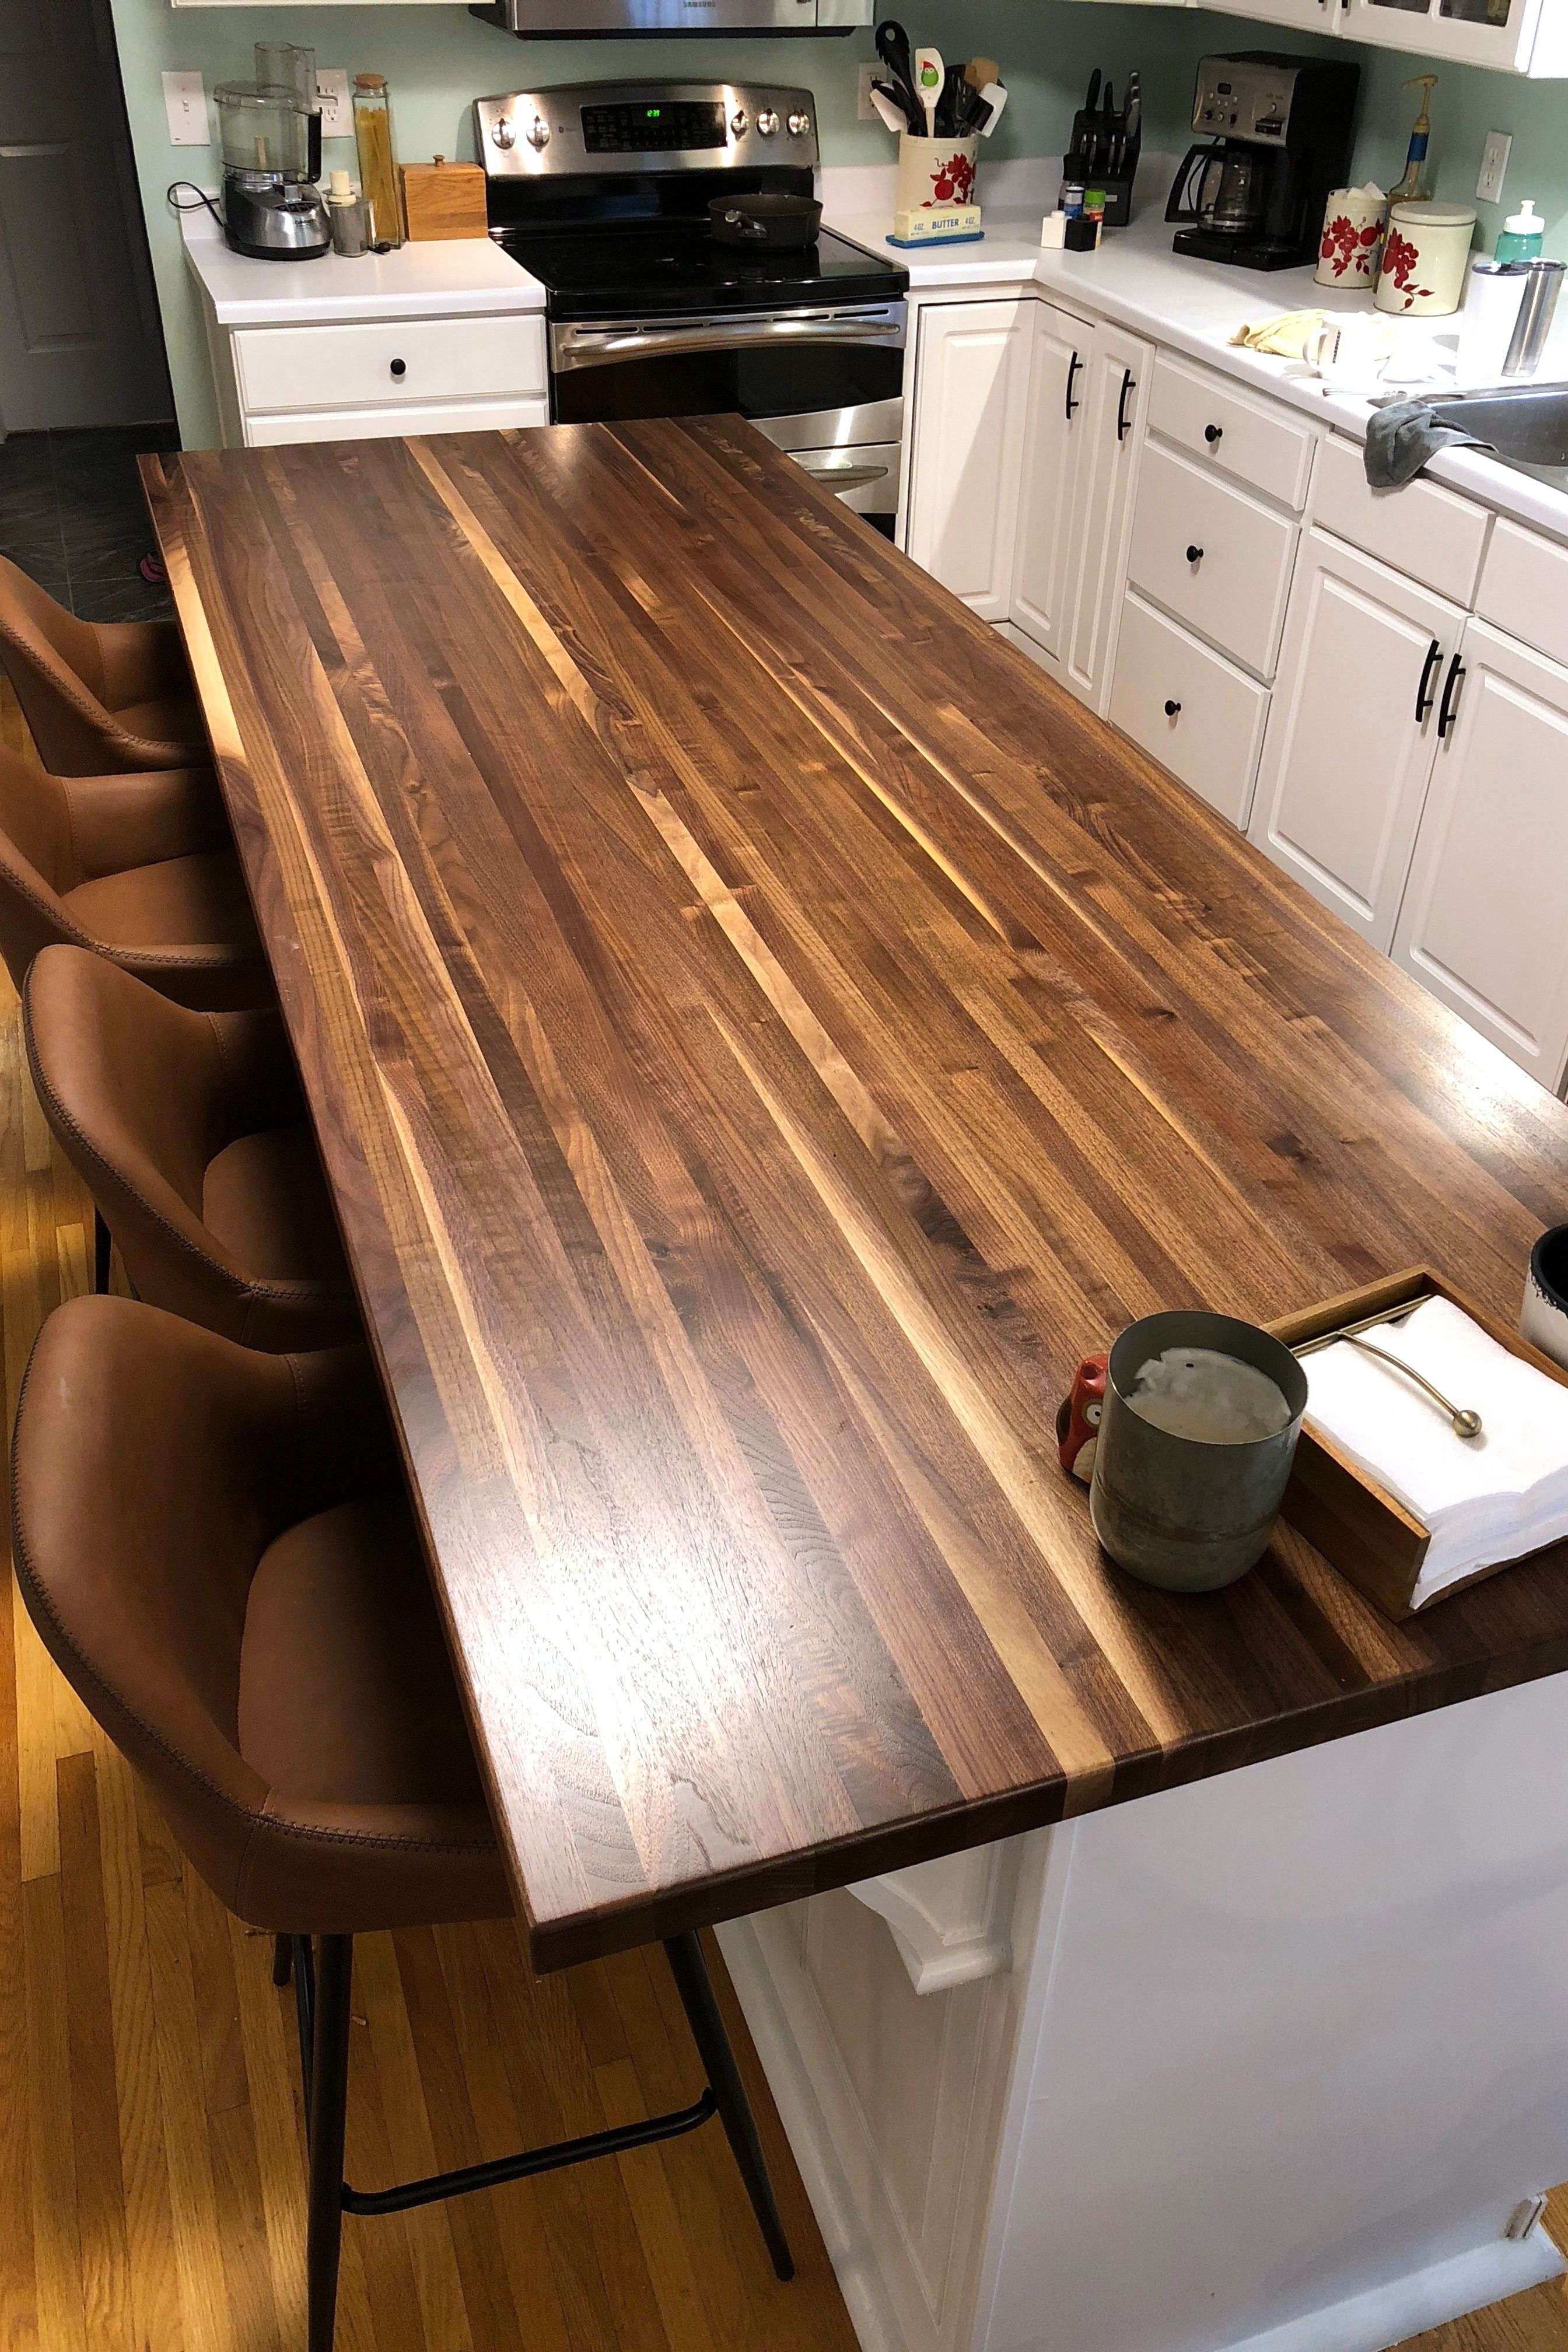 Rustic Walnut Edge Grain Butcher Block Countertop In 2020 Wood